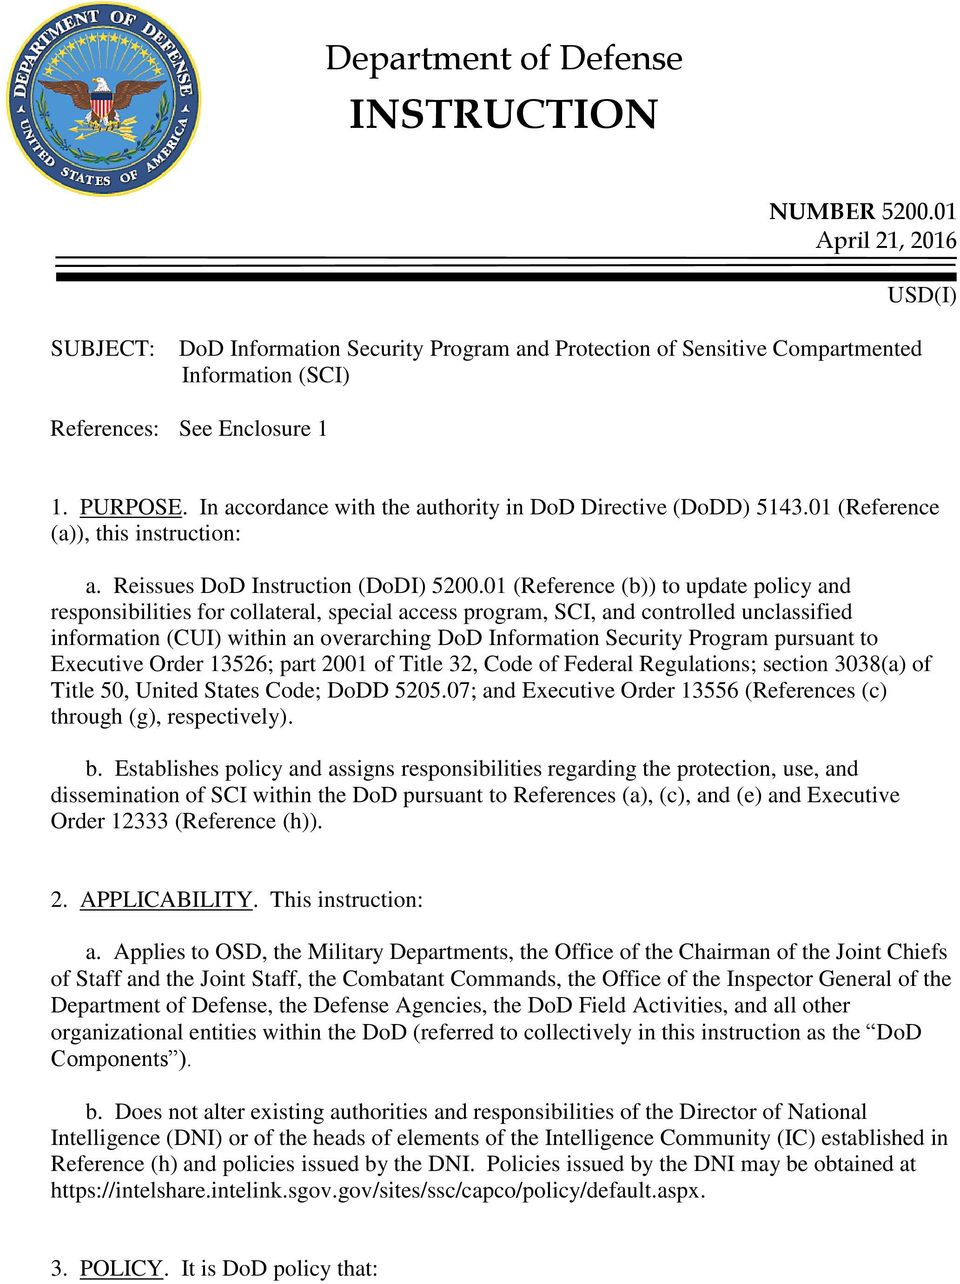 In accordance with the authority in DoD Directive (DoDD) 5143.01 (Reference (a)), this instruction: a. Reissues DoD Instruction (DoDI) 5200.